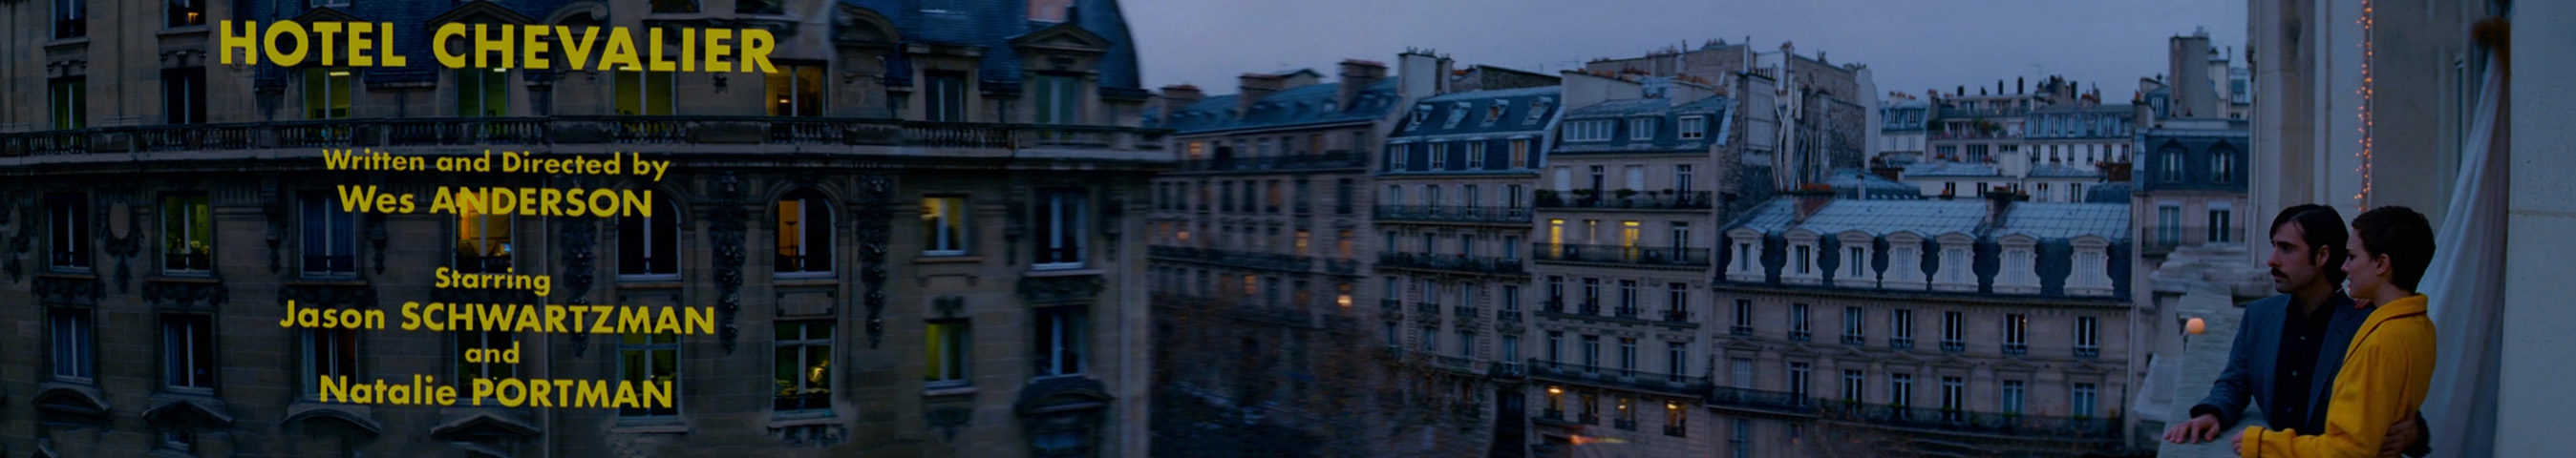 Hotel-Chevalier-Wes-Anderson-film-panoramas-wmiii-7